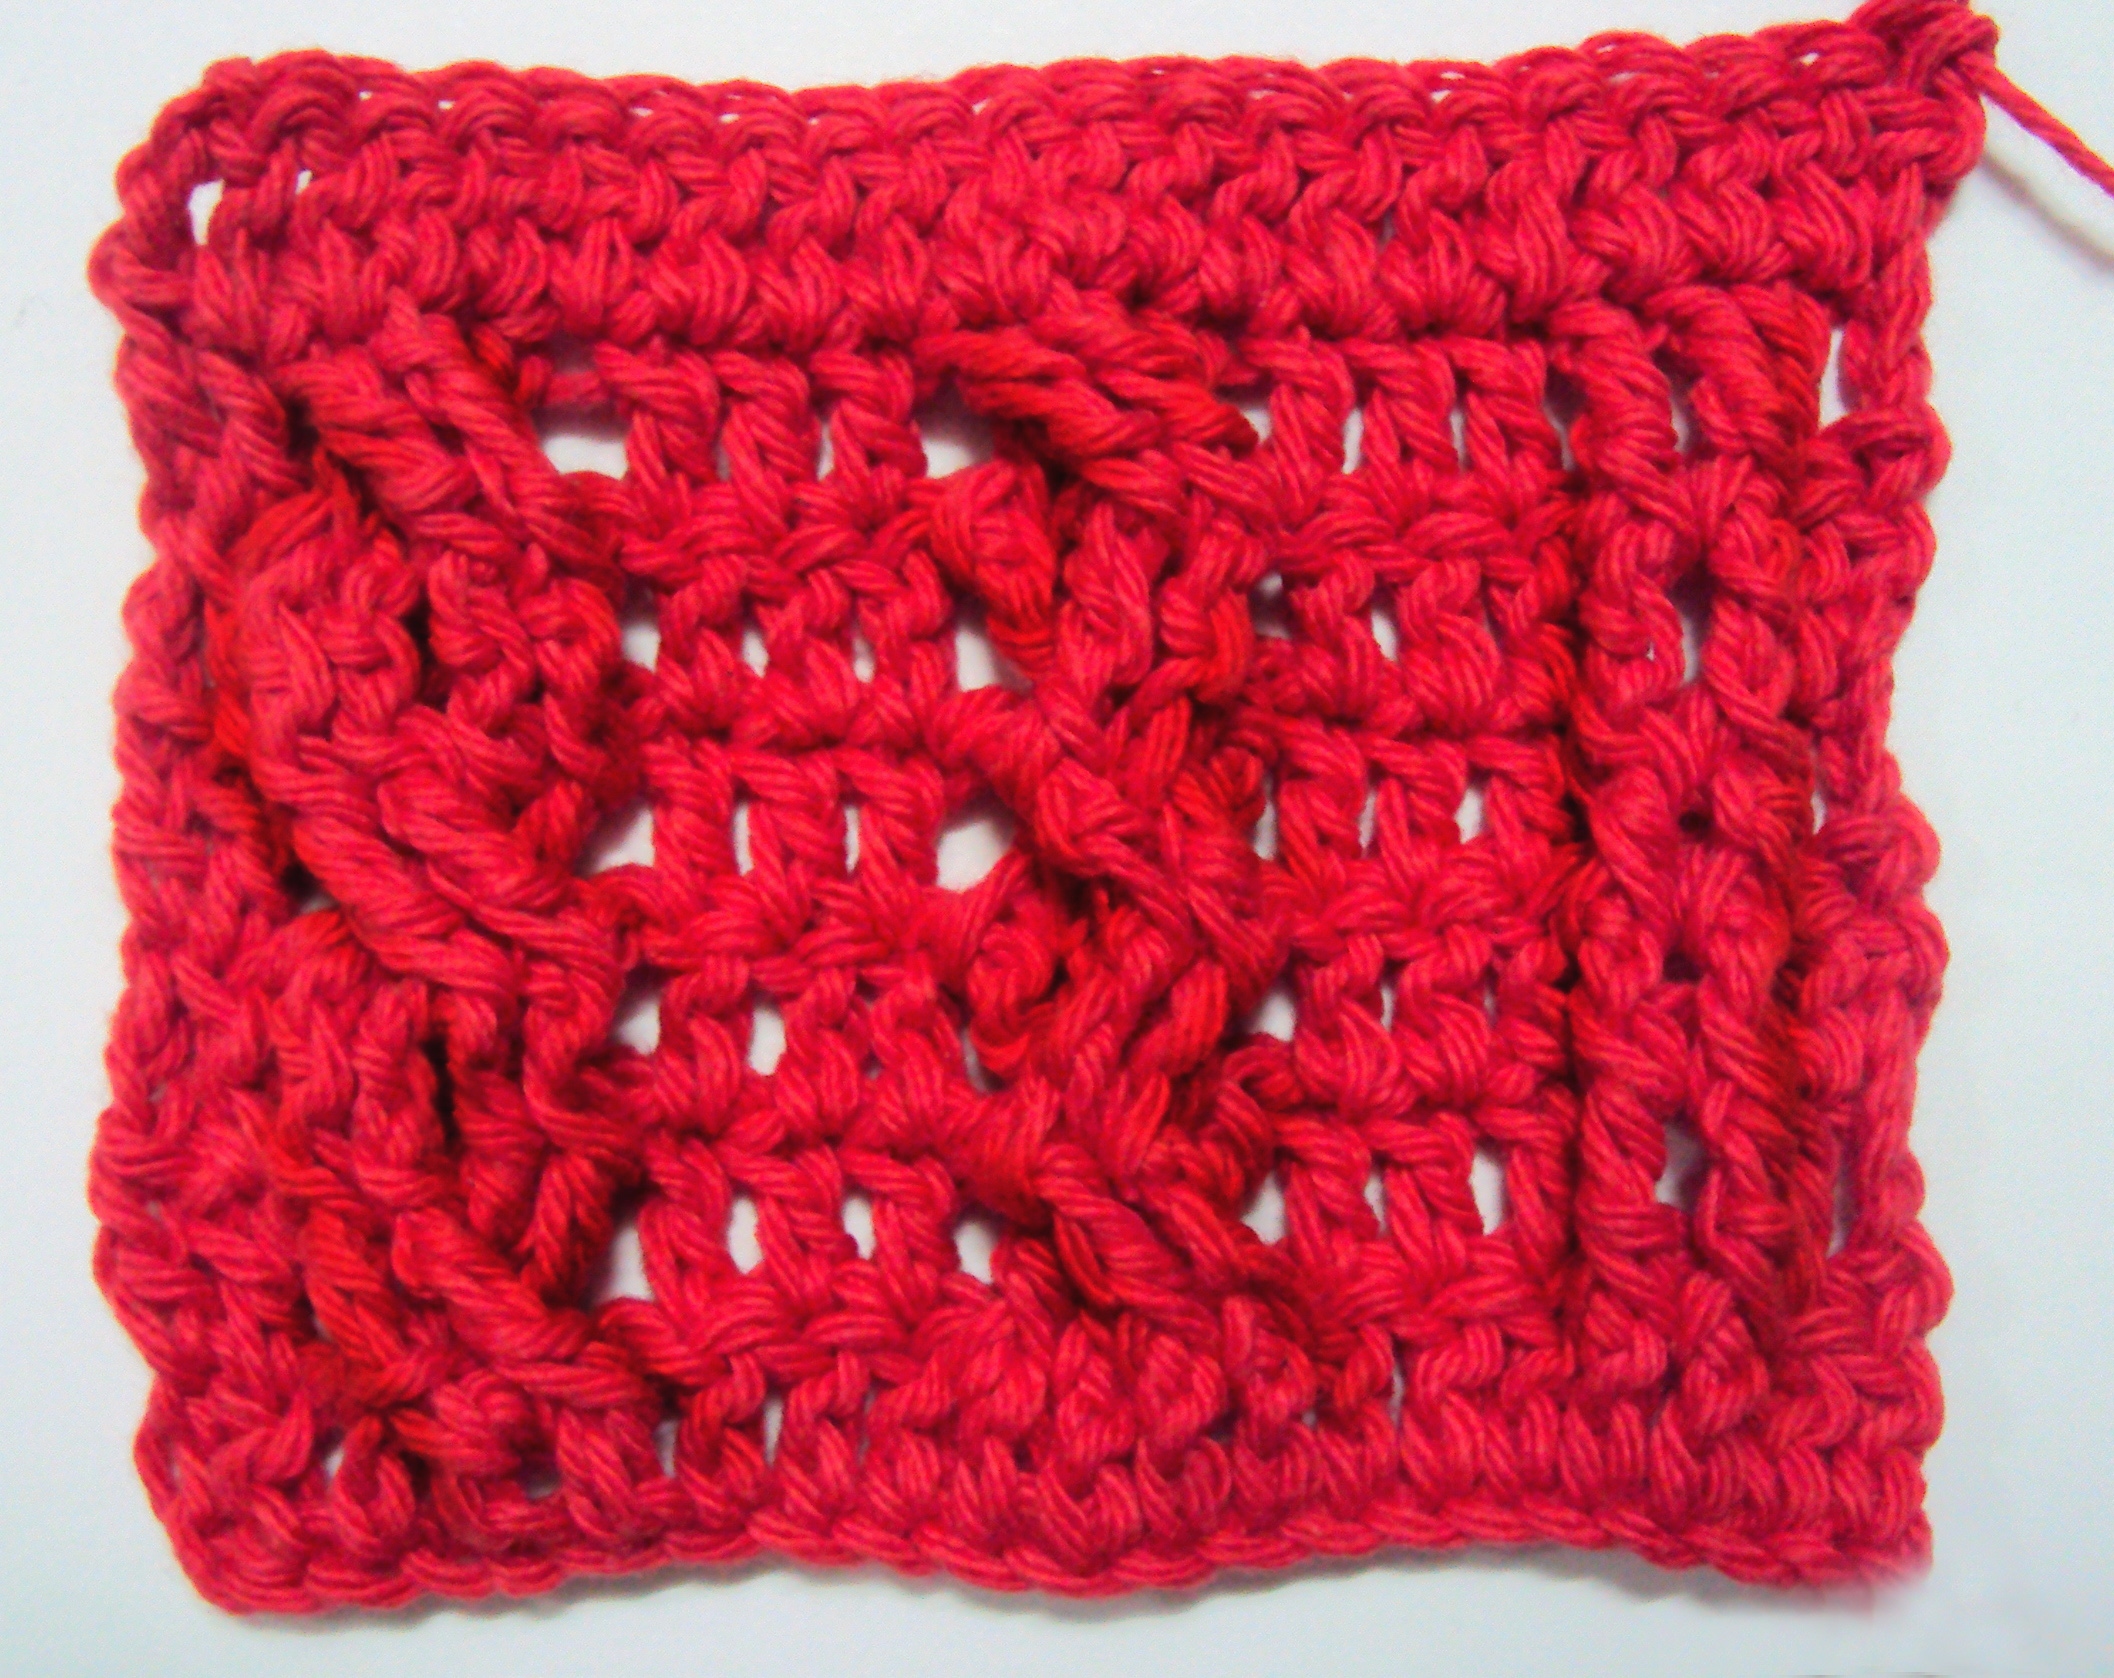 Crocheting Stitches : Crochet Stitches How to crochet: cable stitches